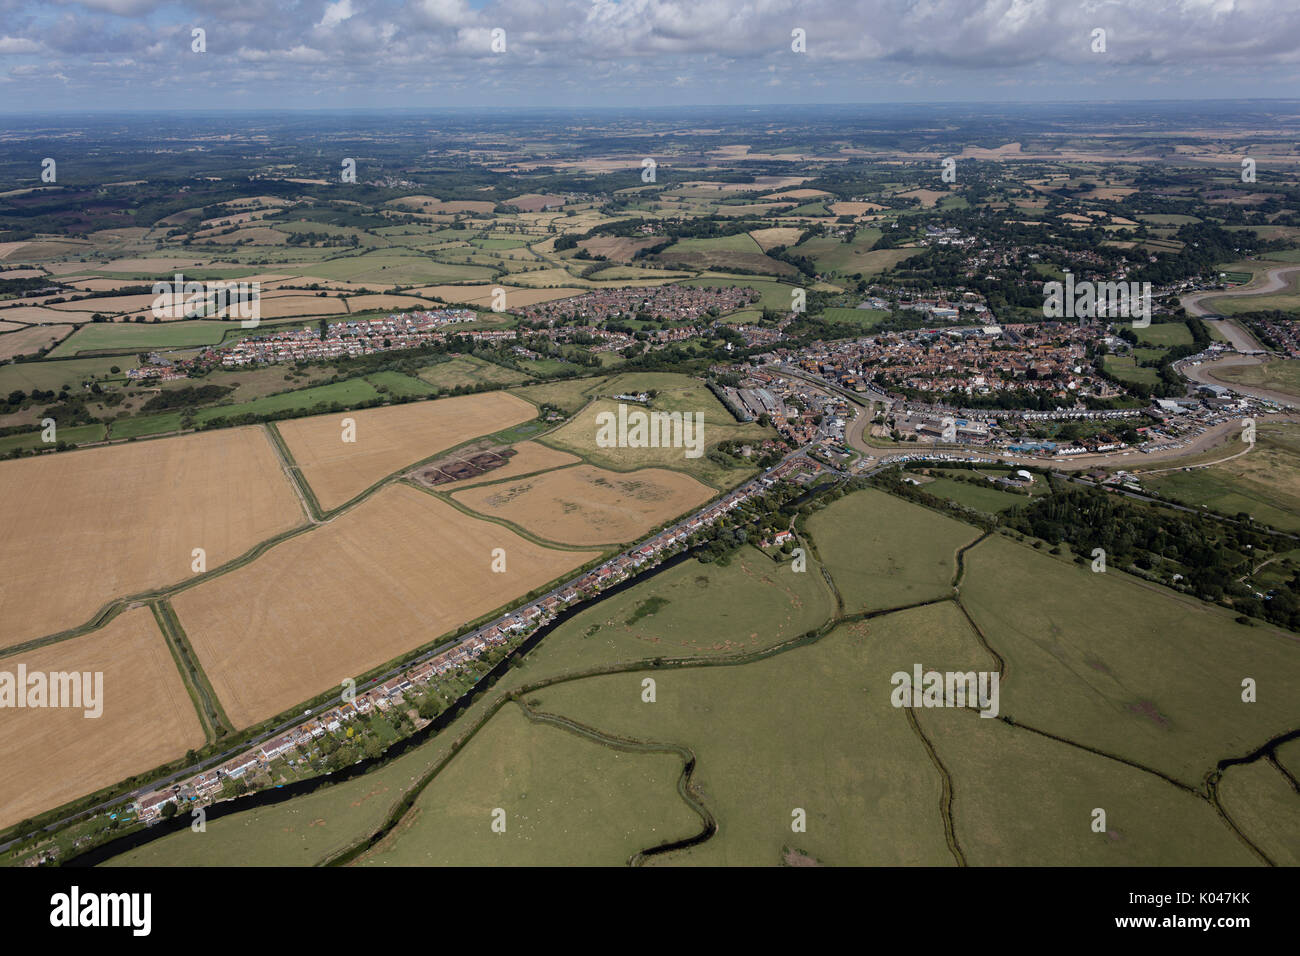 An aerial view of the town of Rye and surrounding East Sussex countryside - Stock Image